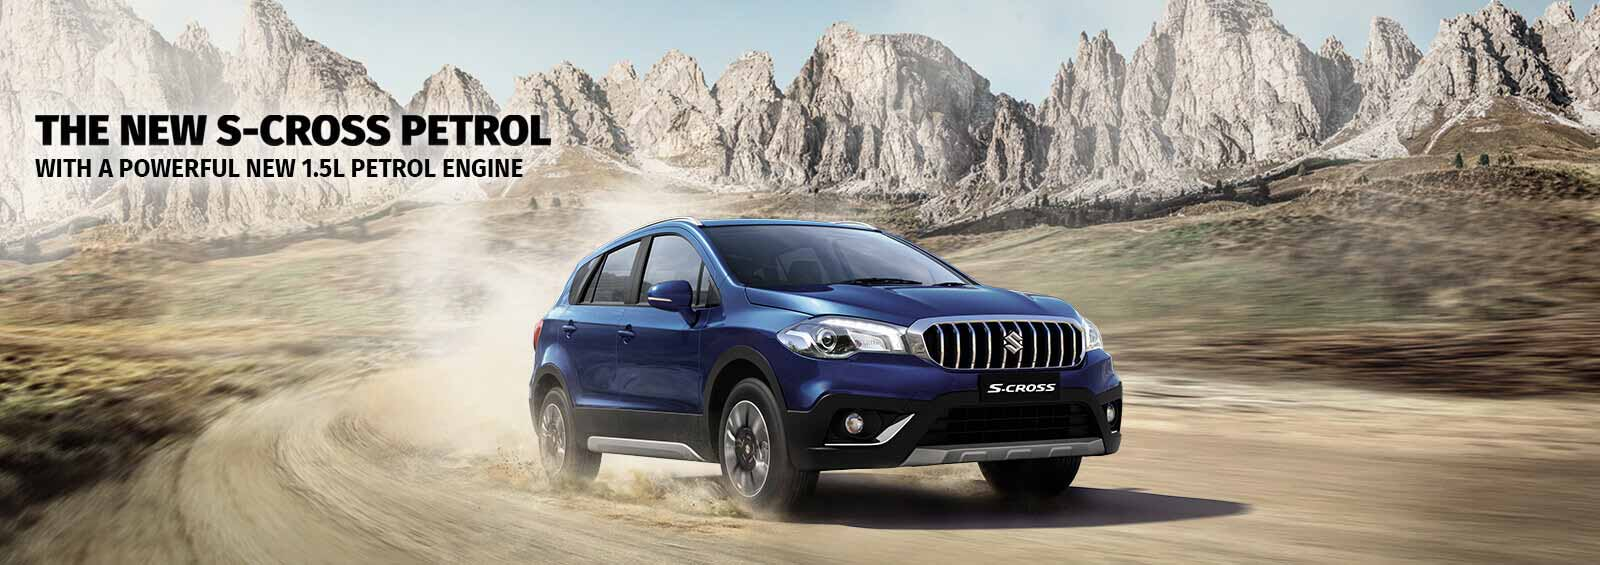 S-Cross  Alankar Auto Sales & Services Pvt. Ltd. Bailey Road, Patna